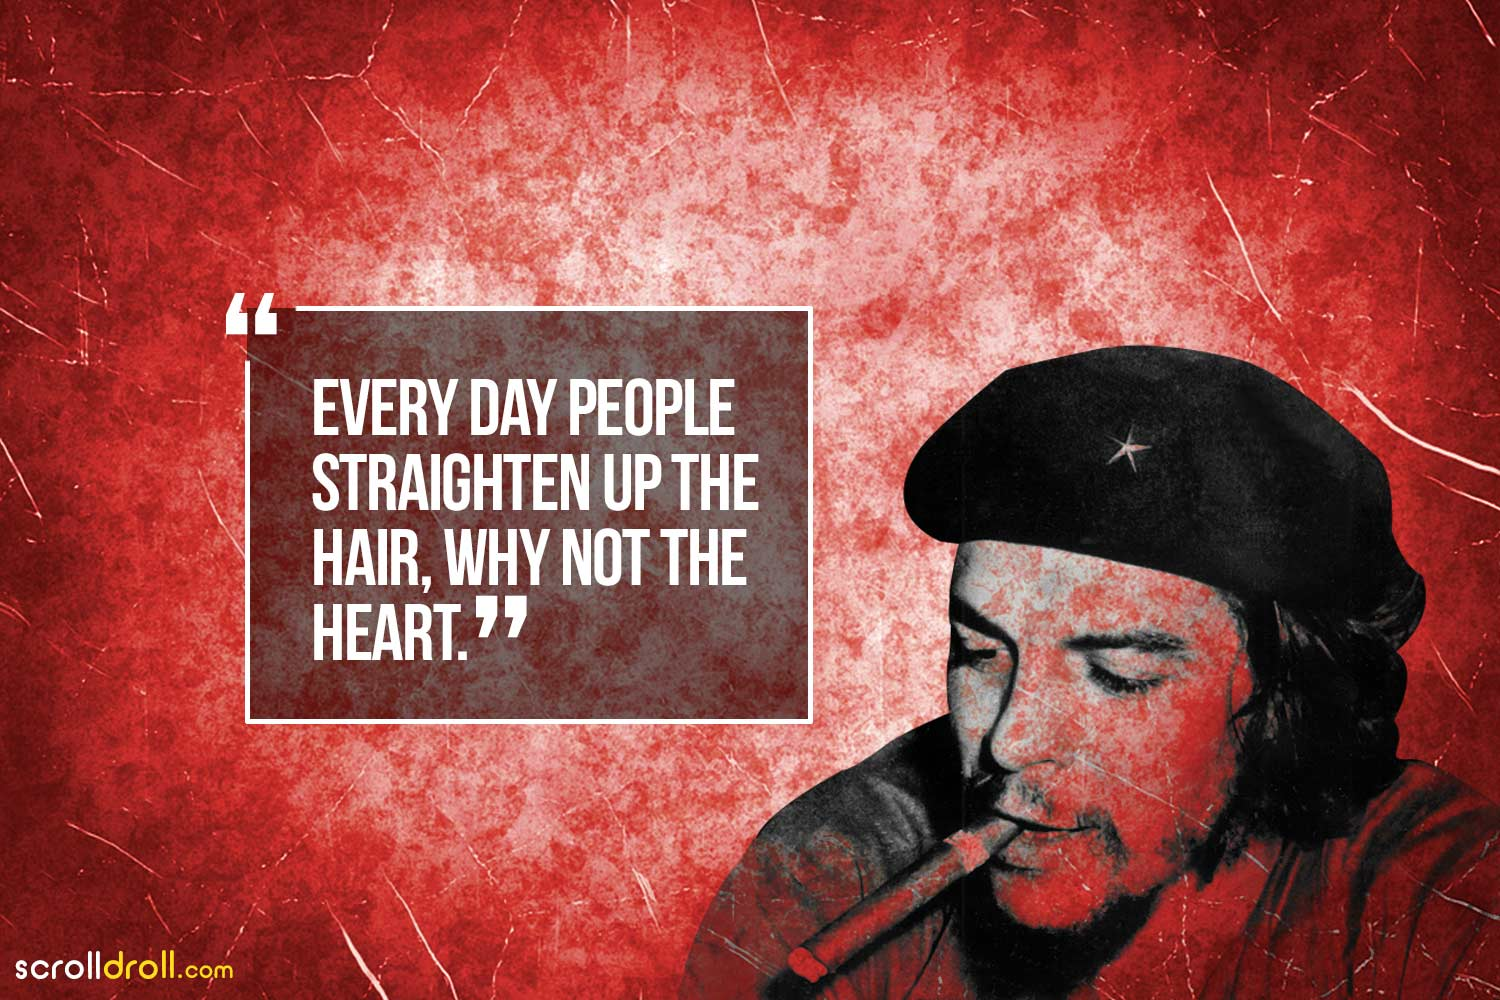 every day people straighten up the hair why not the heart-che guevara